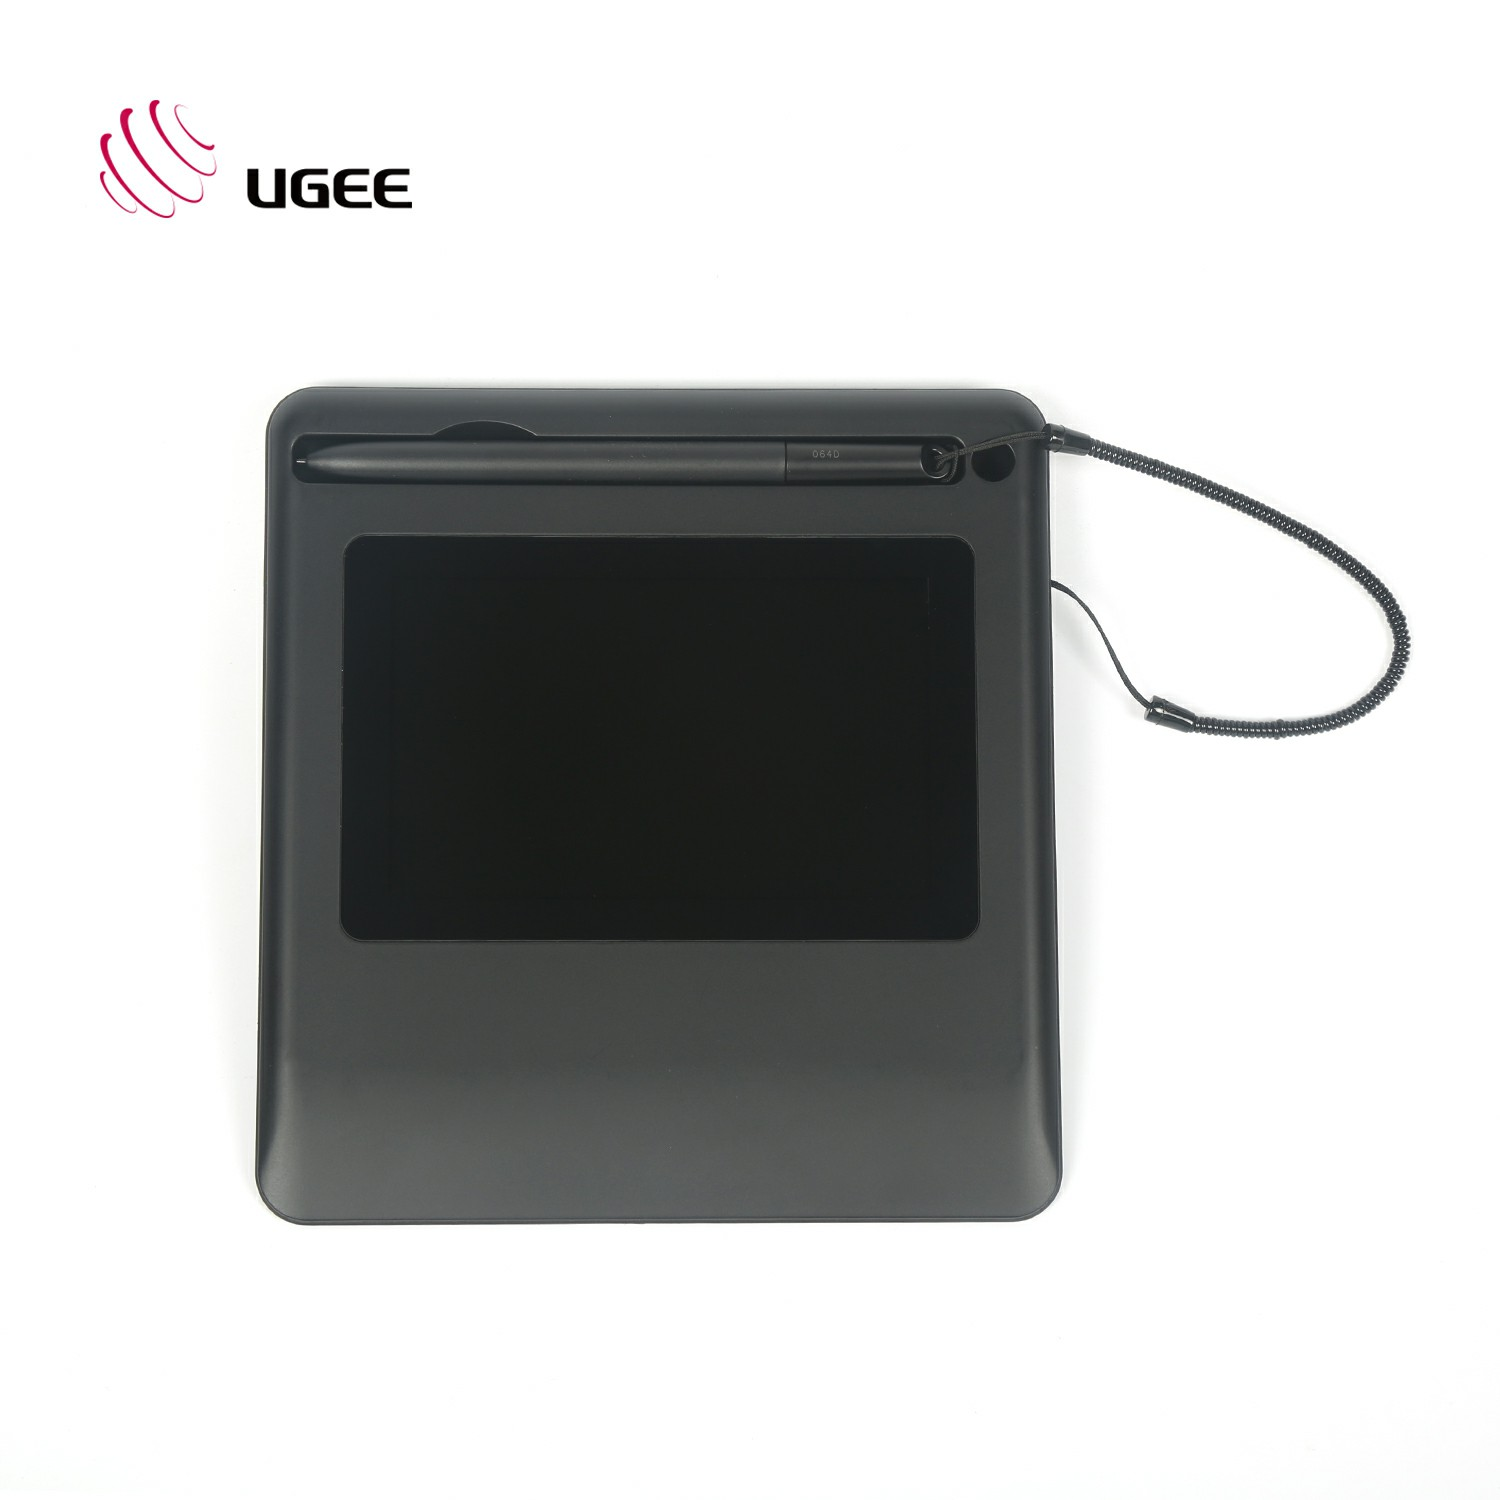 Ugee-Find From Ugee Technology-1